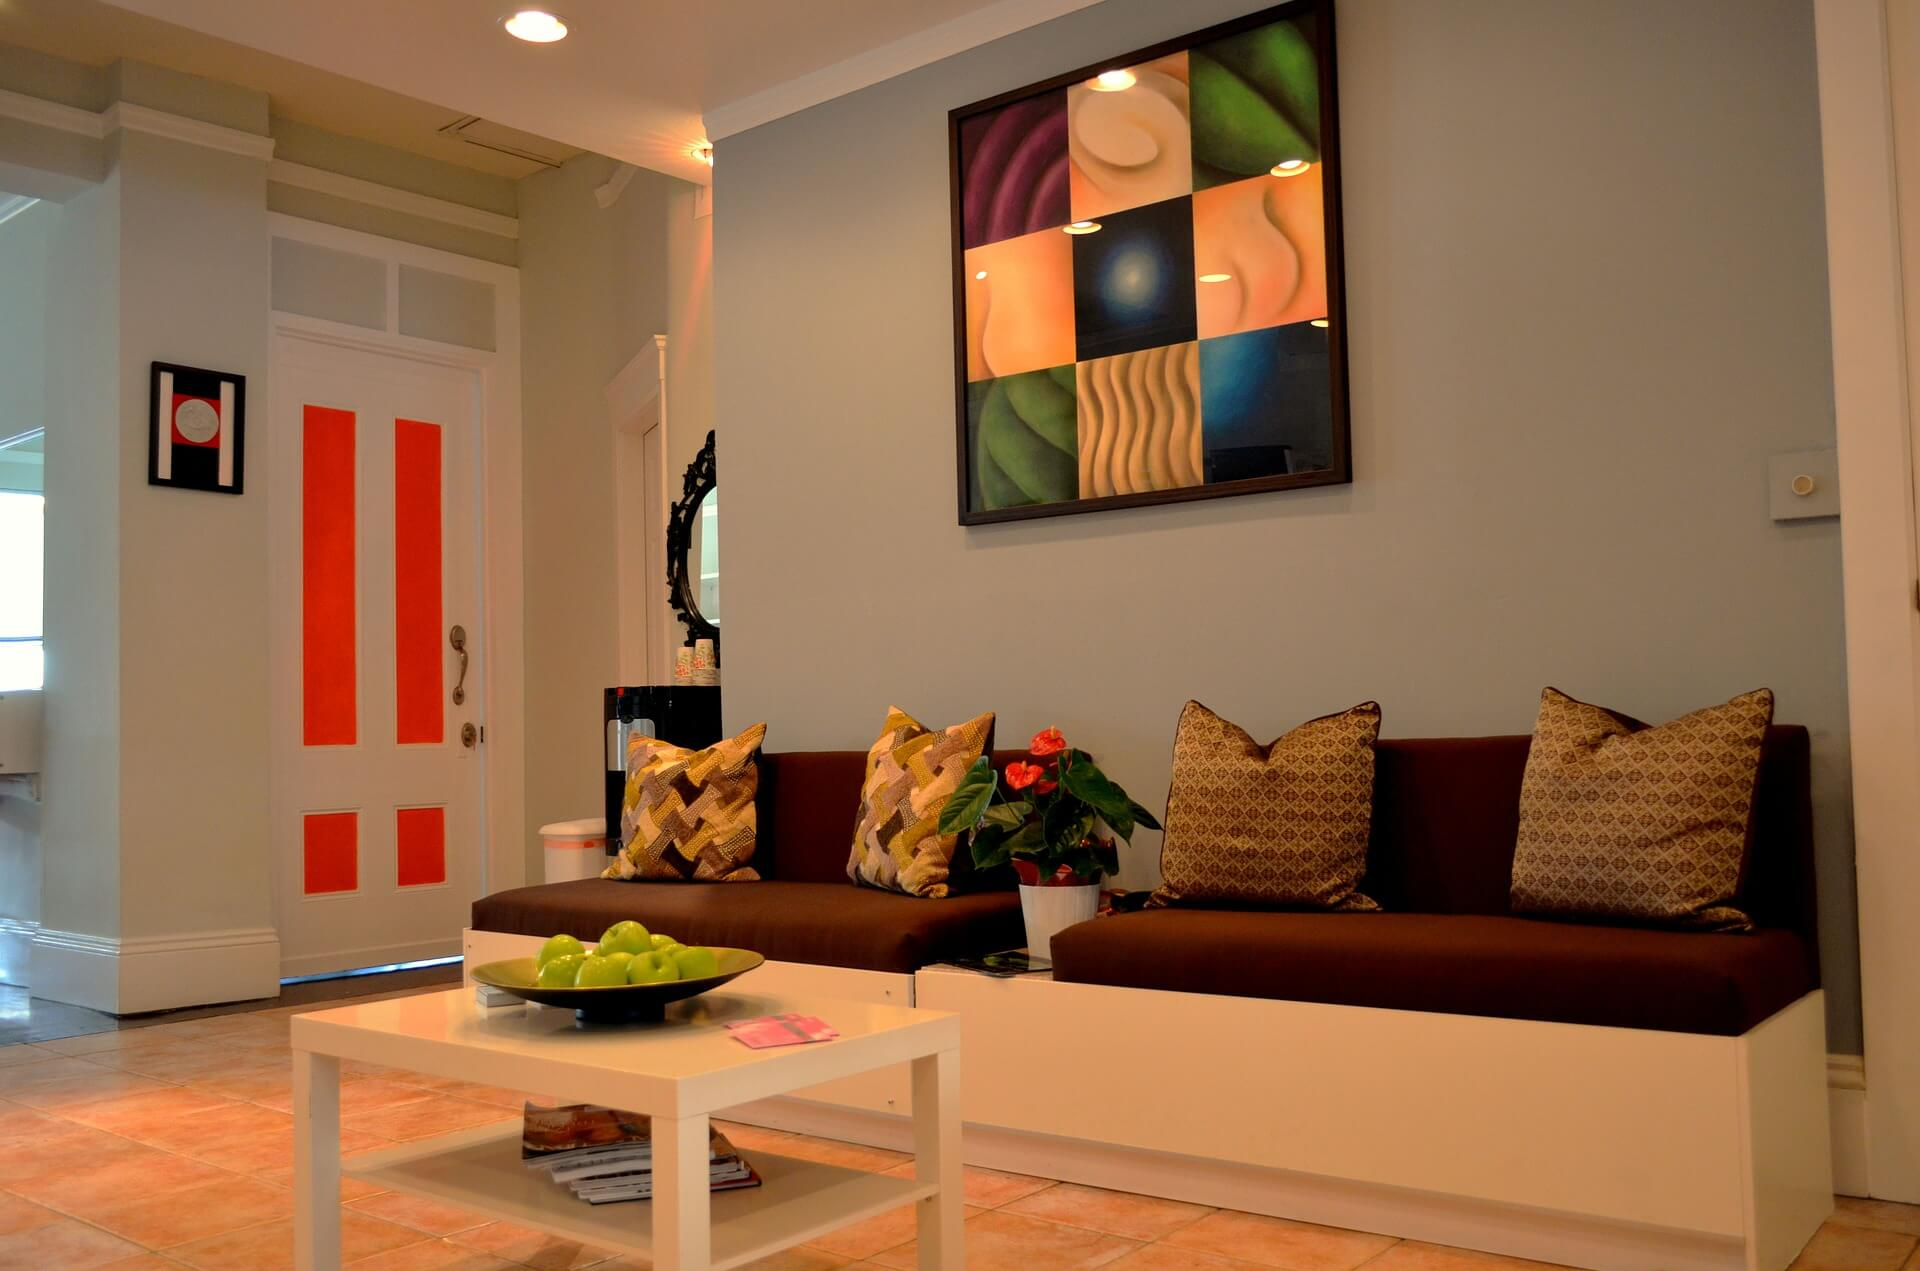 3 tips for matching interior design elements together Your home design